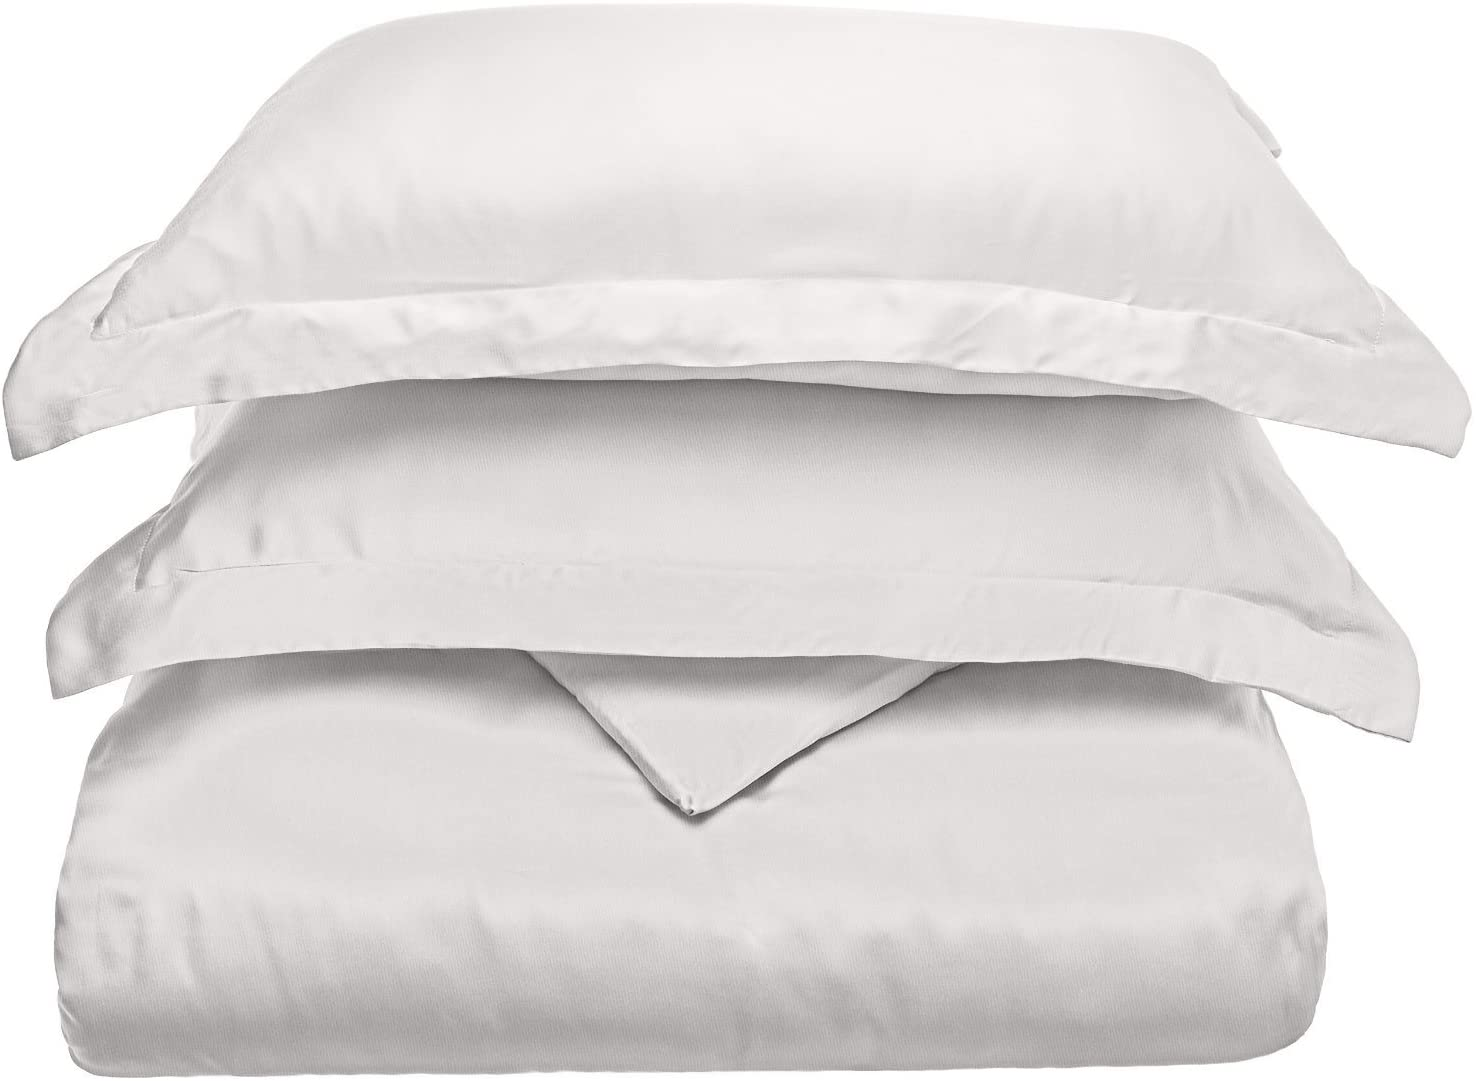 SUPERIOR 300 Thread Count Full/Queen Duvet Cover Set, 100% Modal from Beech, Solid, White